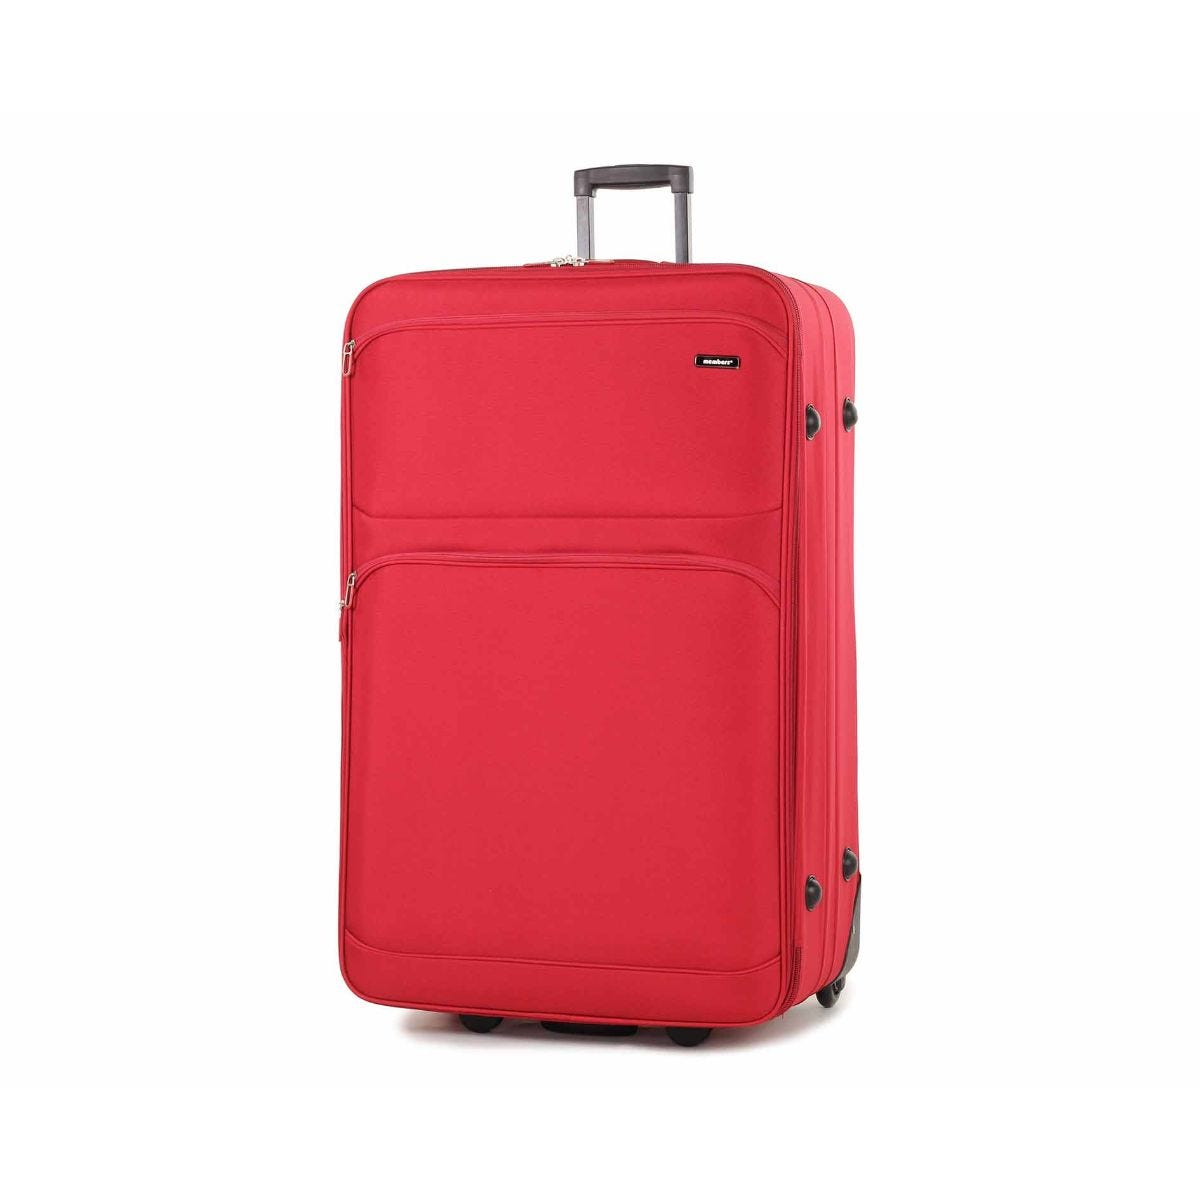 34bde90fc Red Suitcases Bags & Luggage Stationery - Ryman